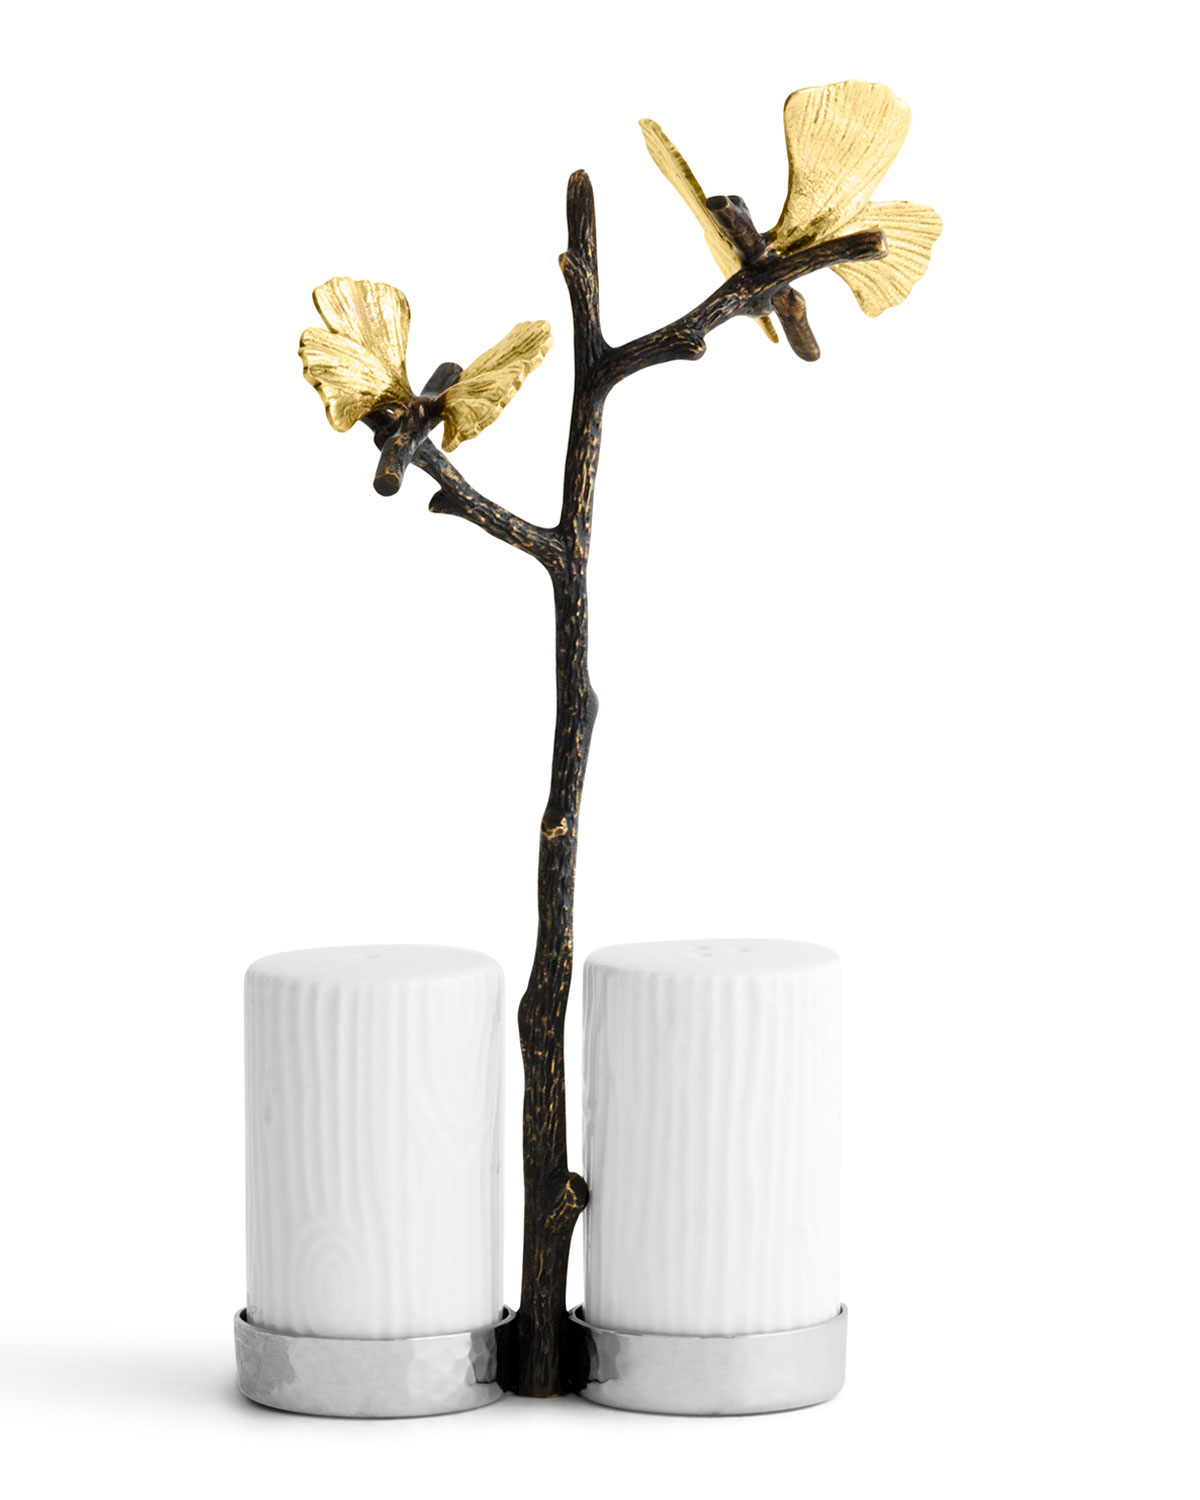 Michael Aram BUTTERFLY GINKGO SALT AND PEPPER SHAKERS WITH CADDY